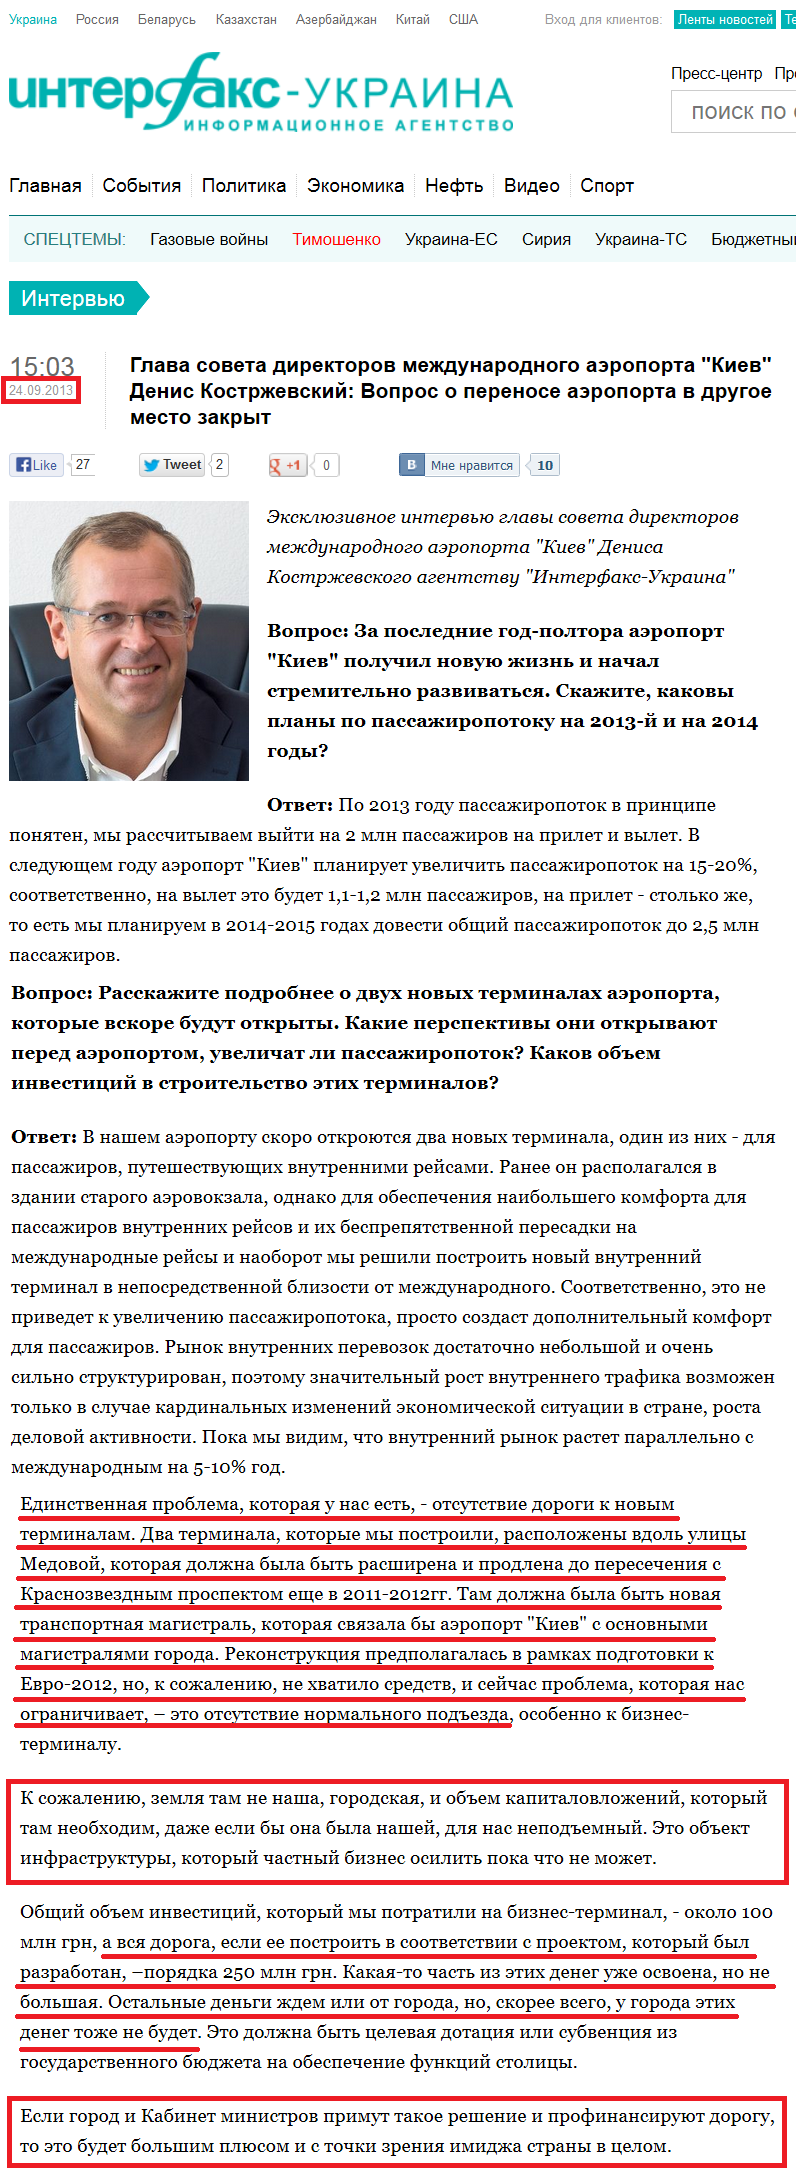 http://interfax.com.ua/news/interview/168310.html